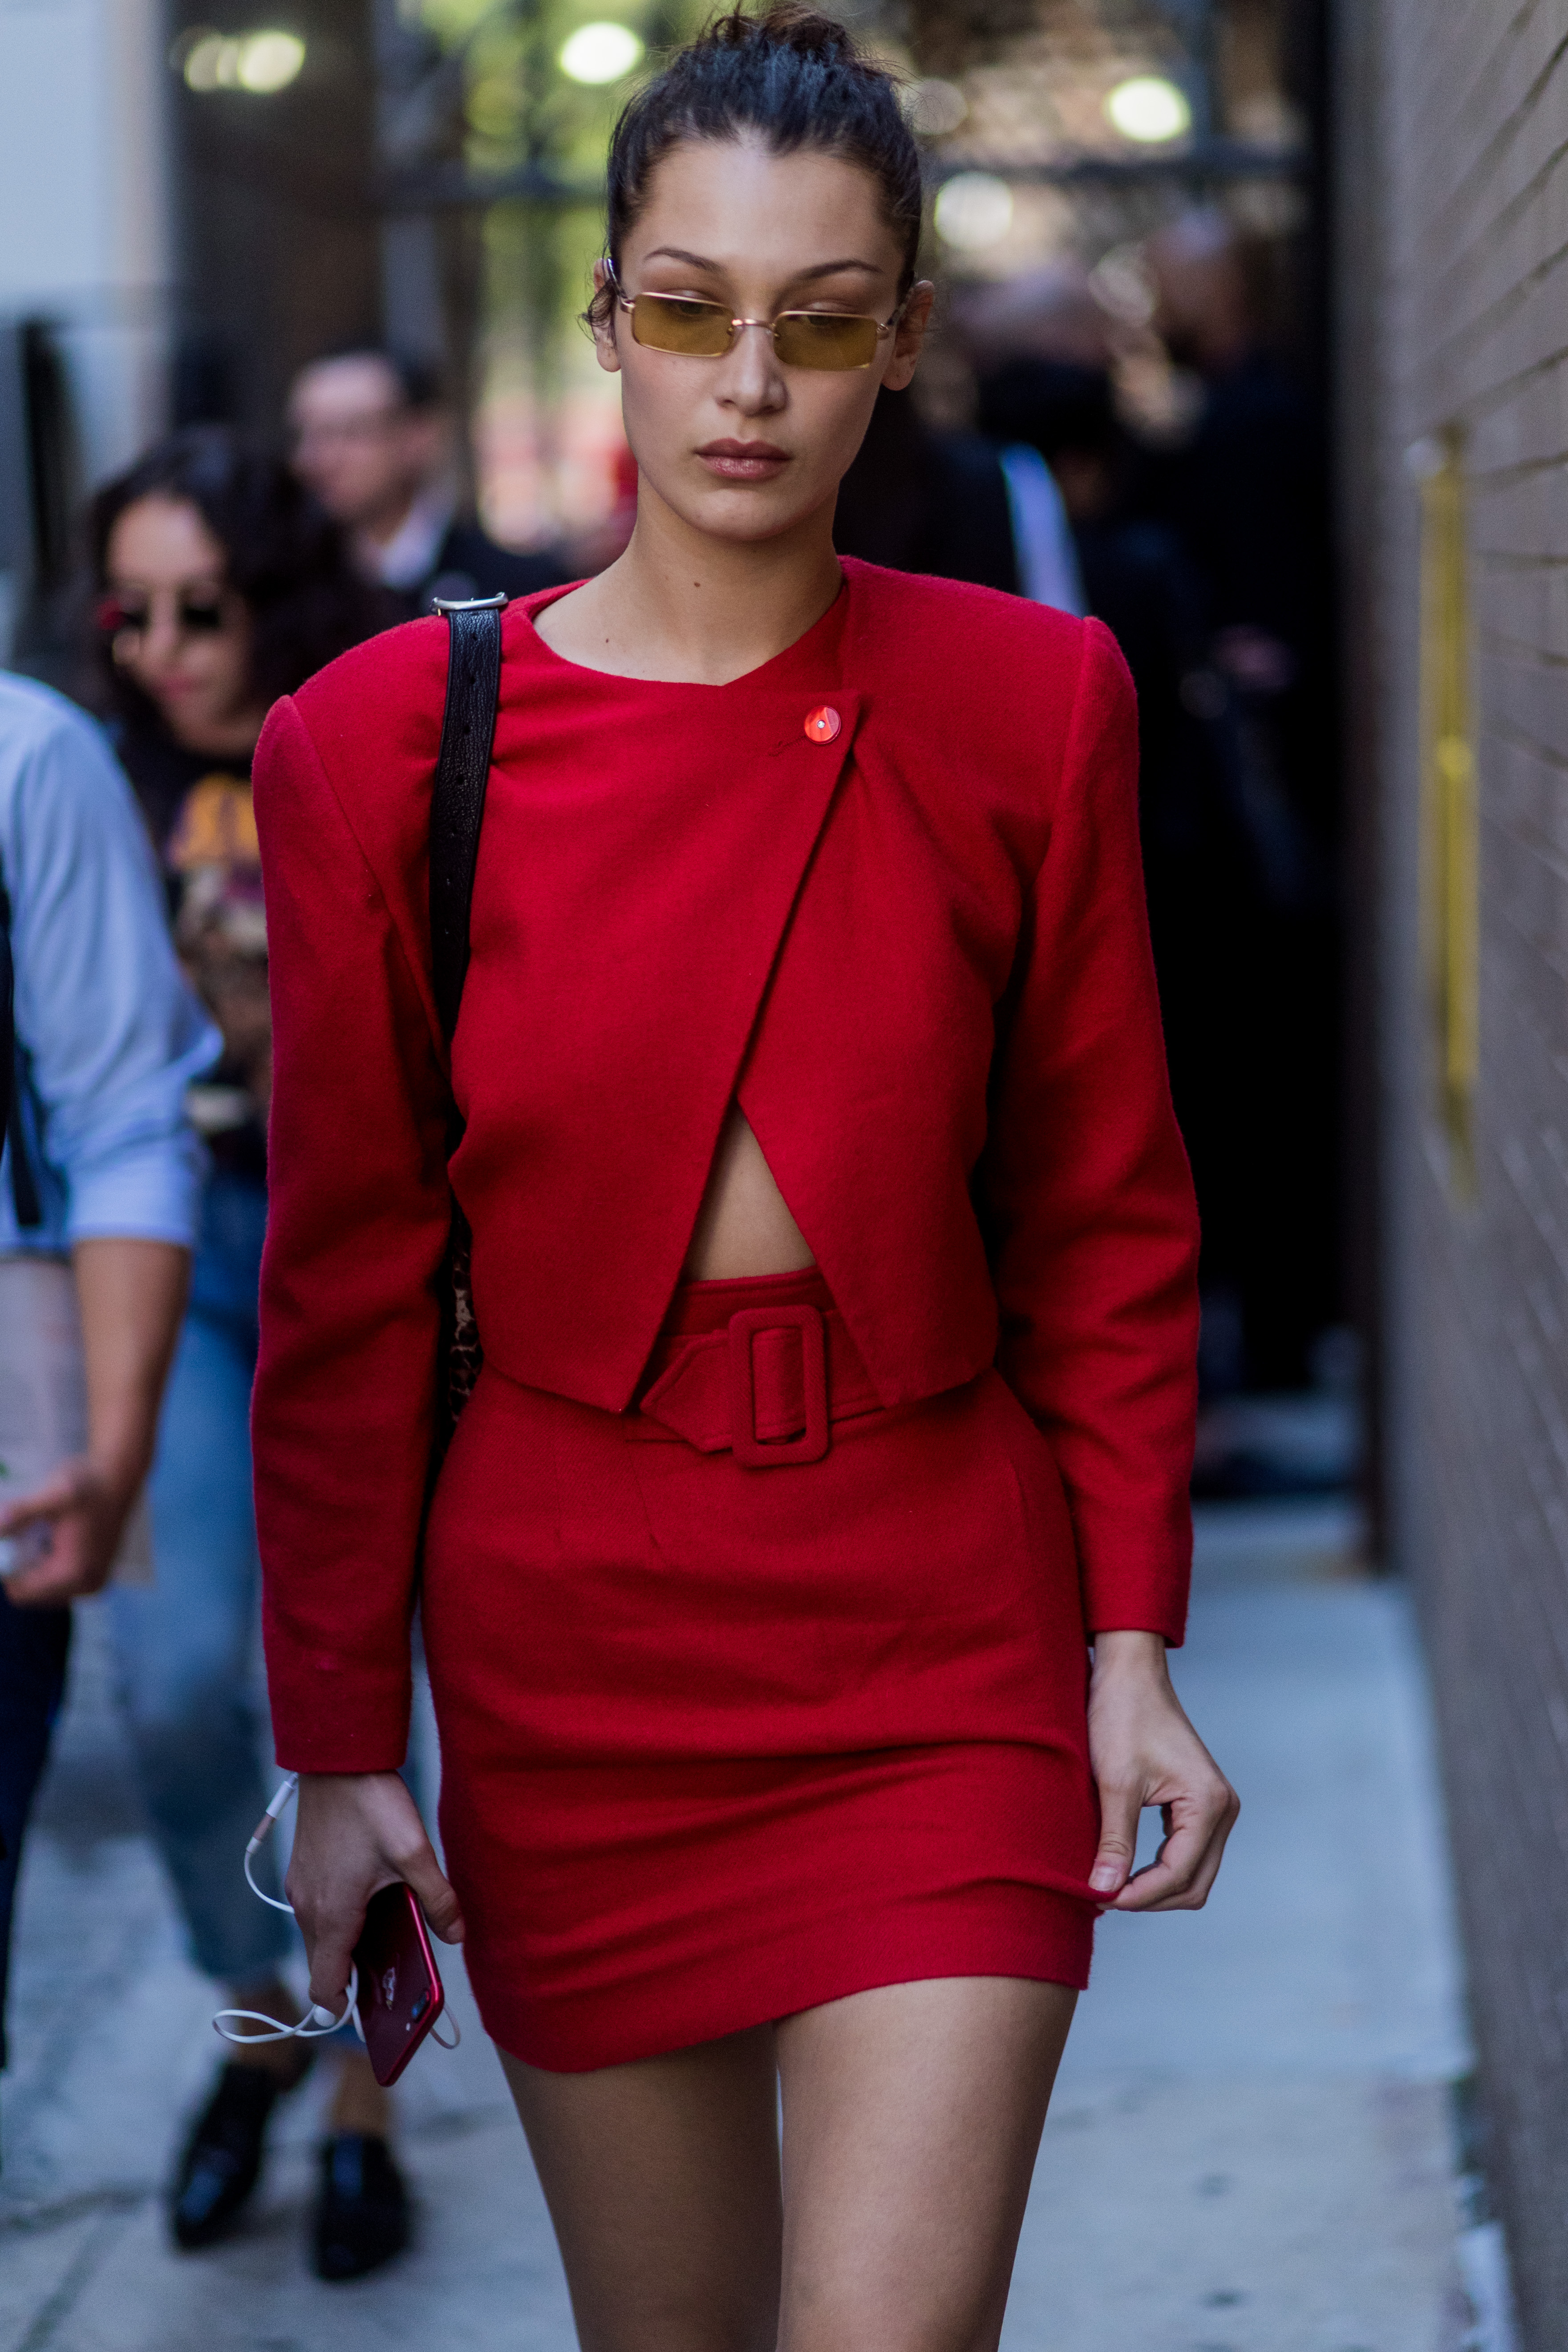 rojo, red, estilo, look, famosas, tendencia